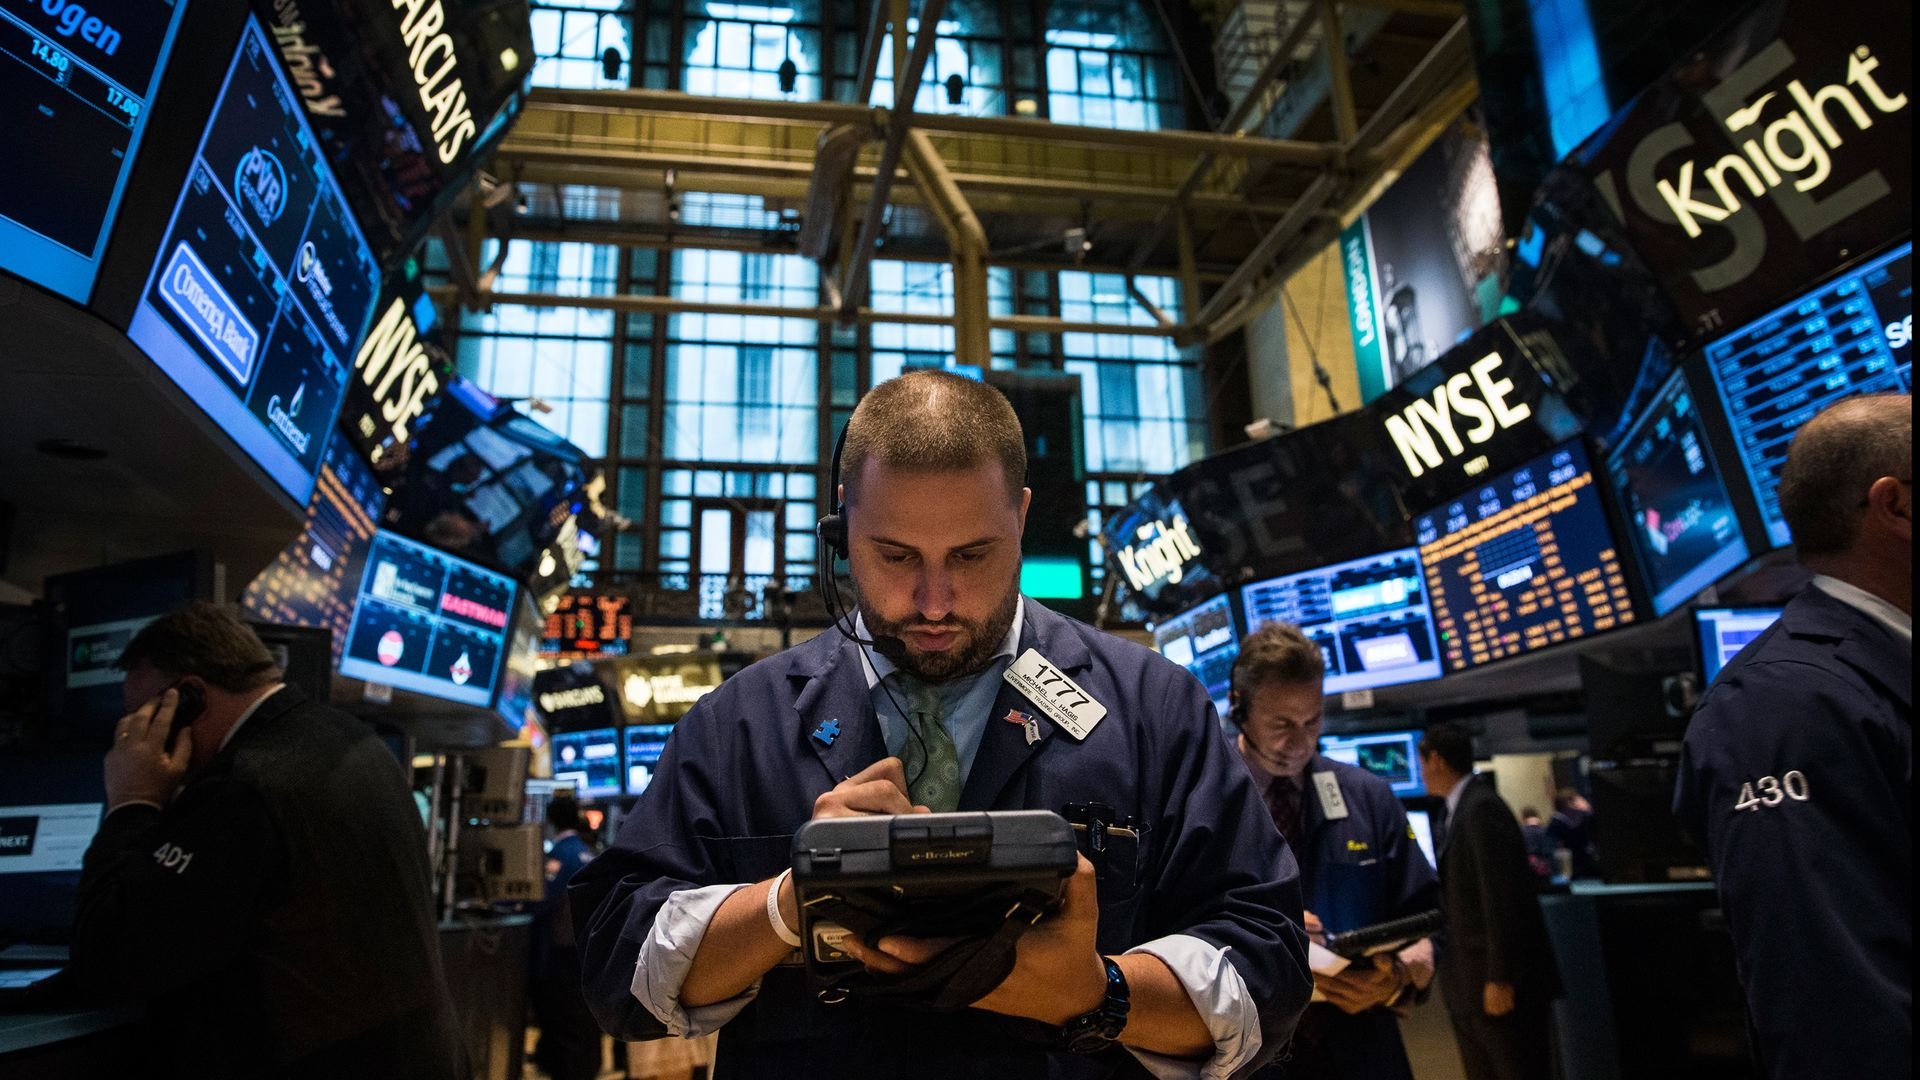 1. How To Make Money In Stocks